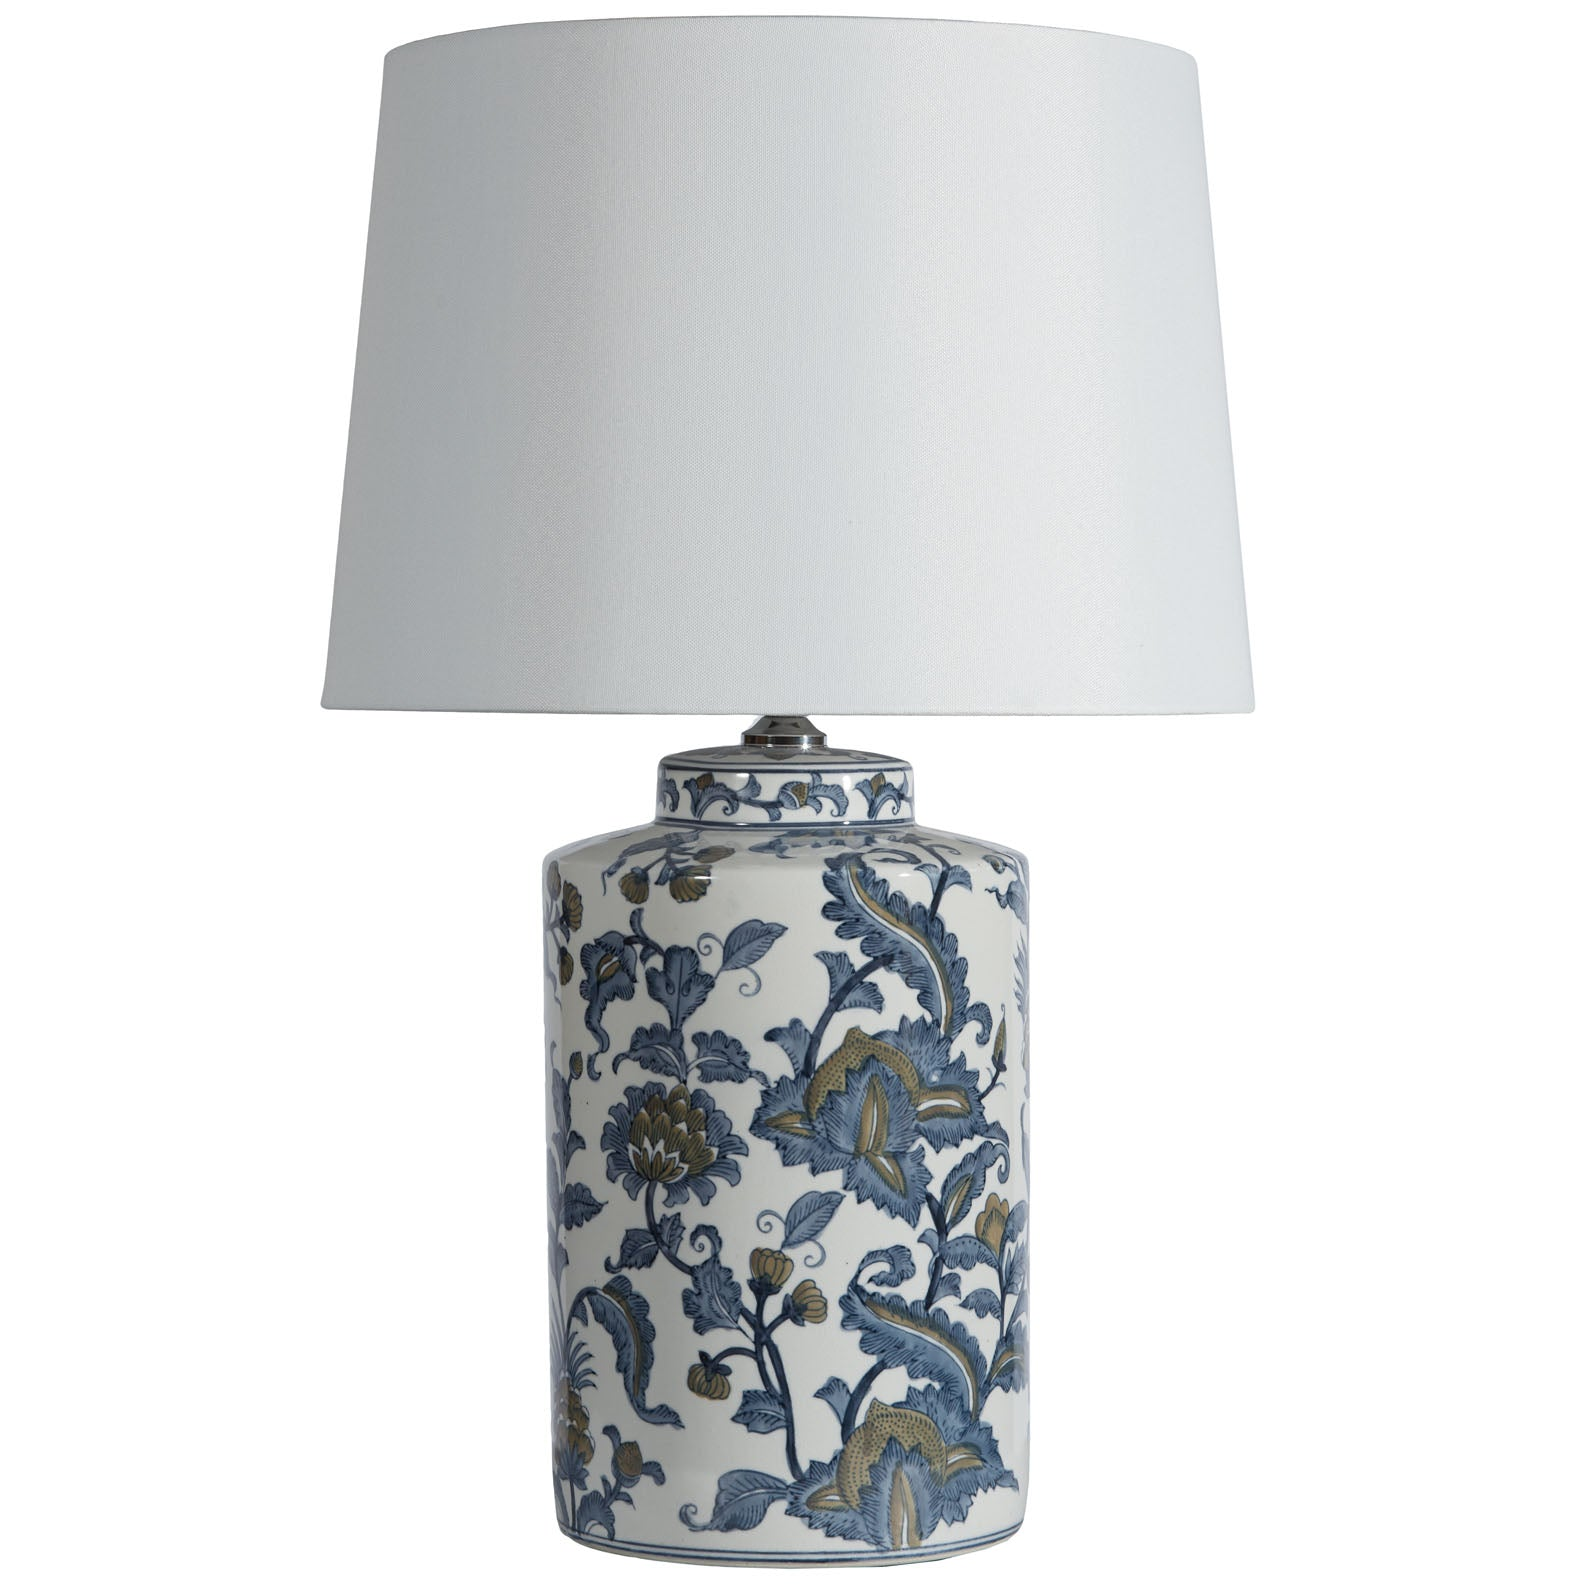 Botanica Table Lamp